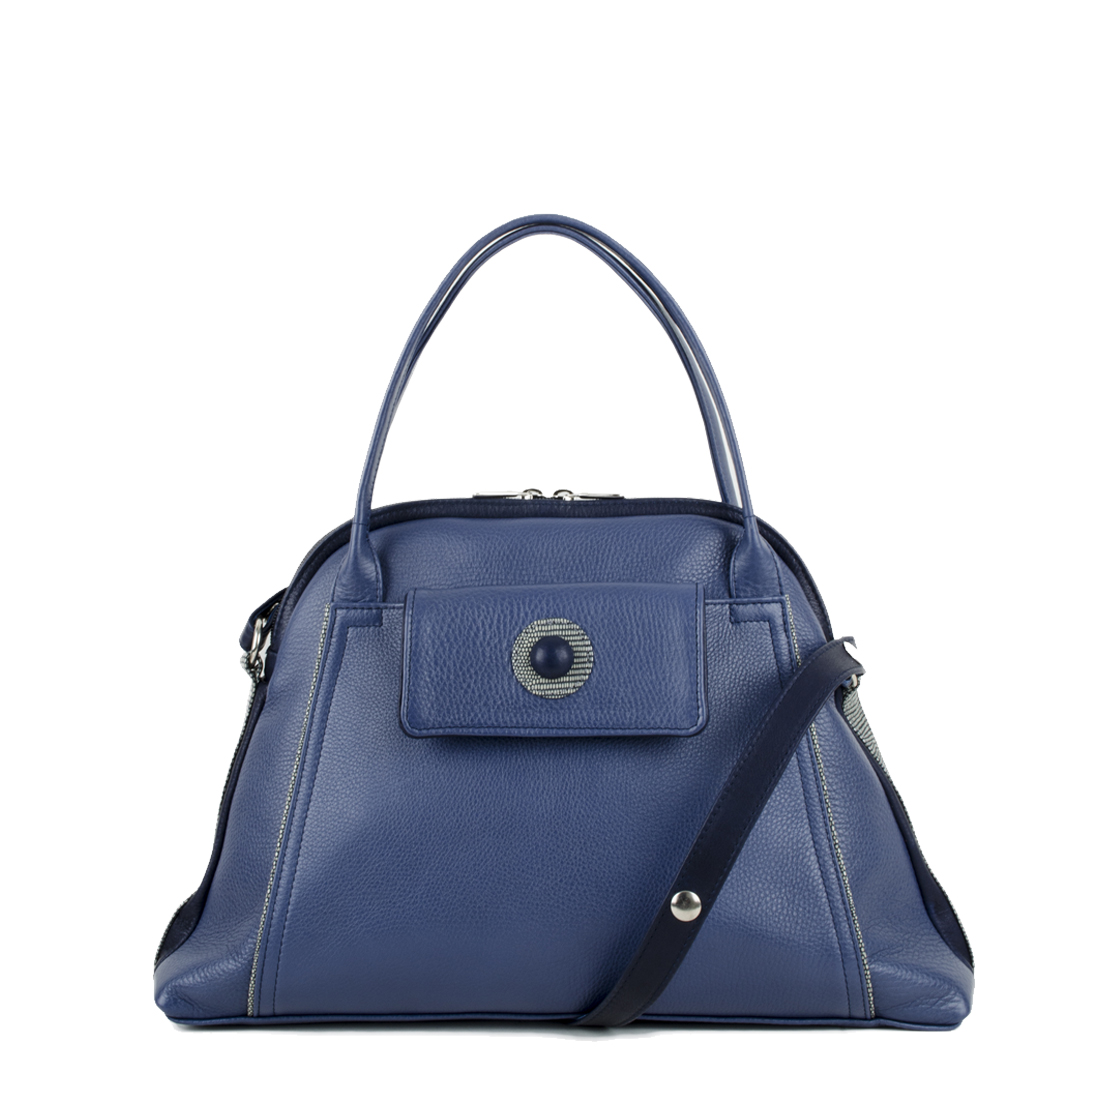 Lottie Chalk Blue Leather Shoulder Bag